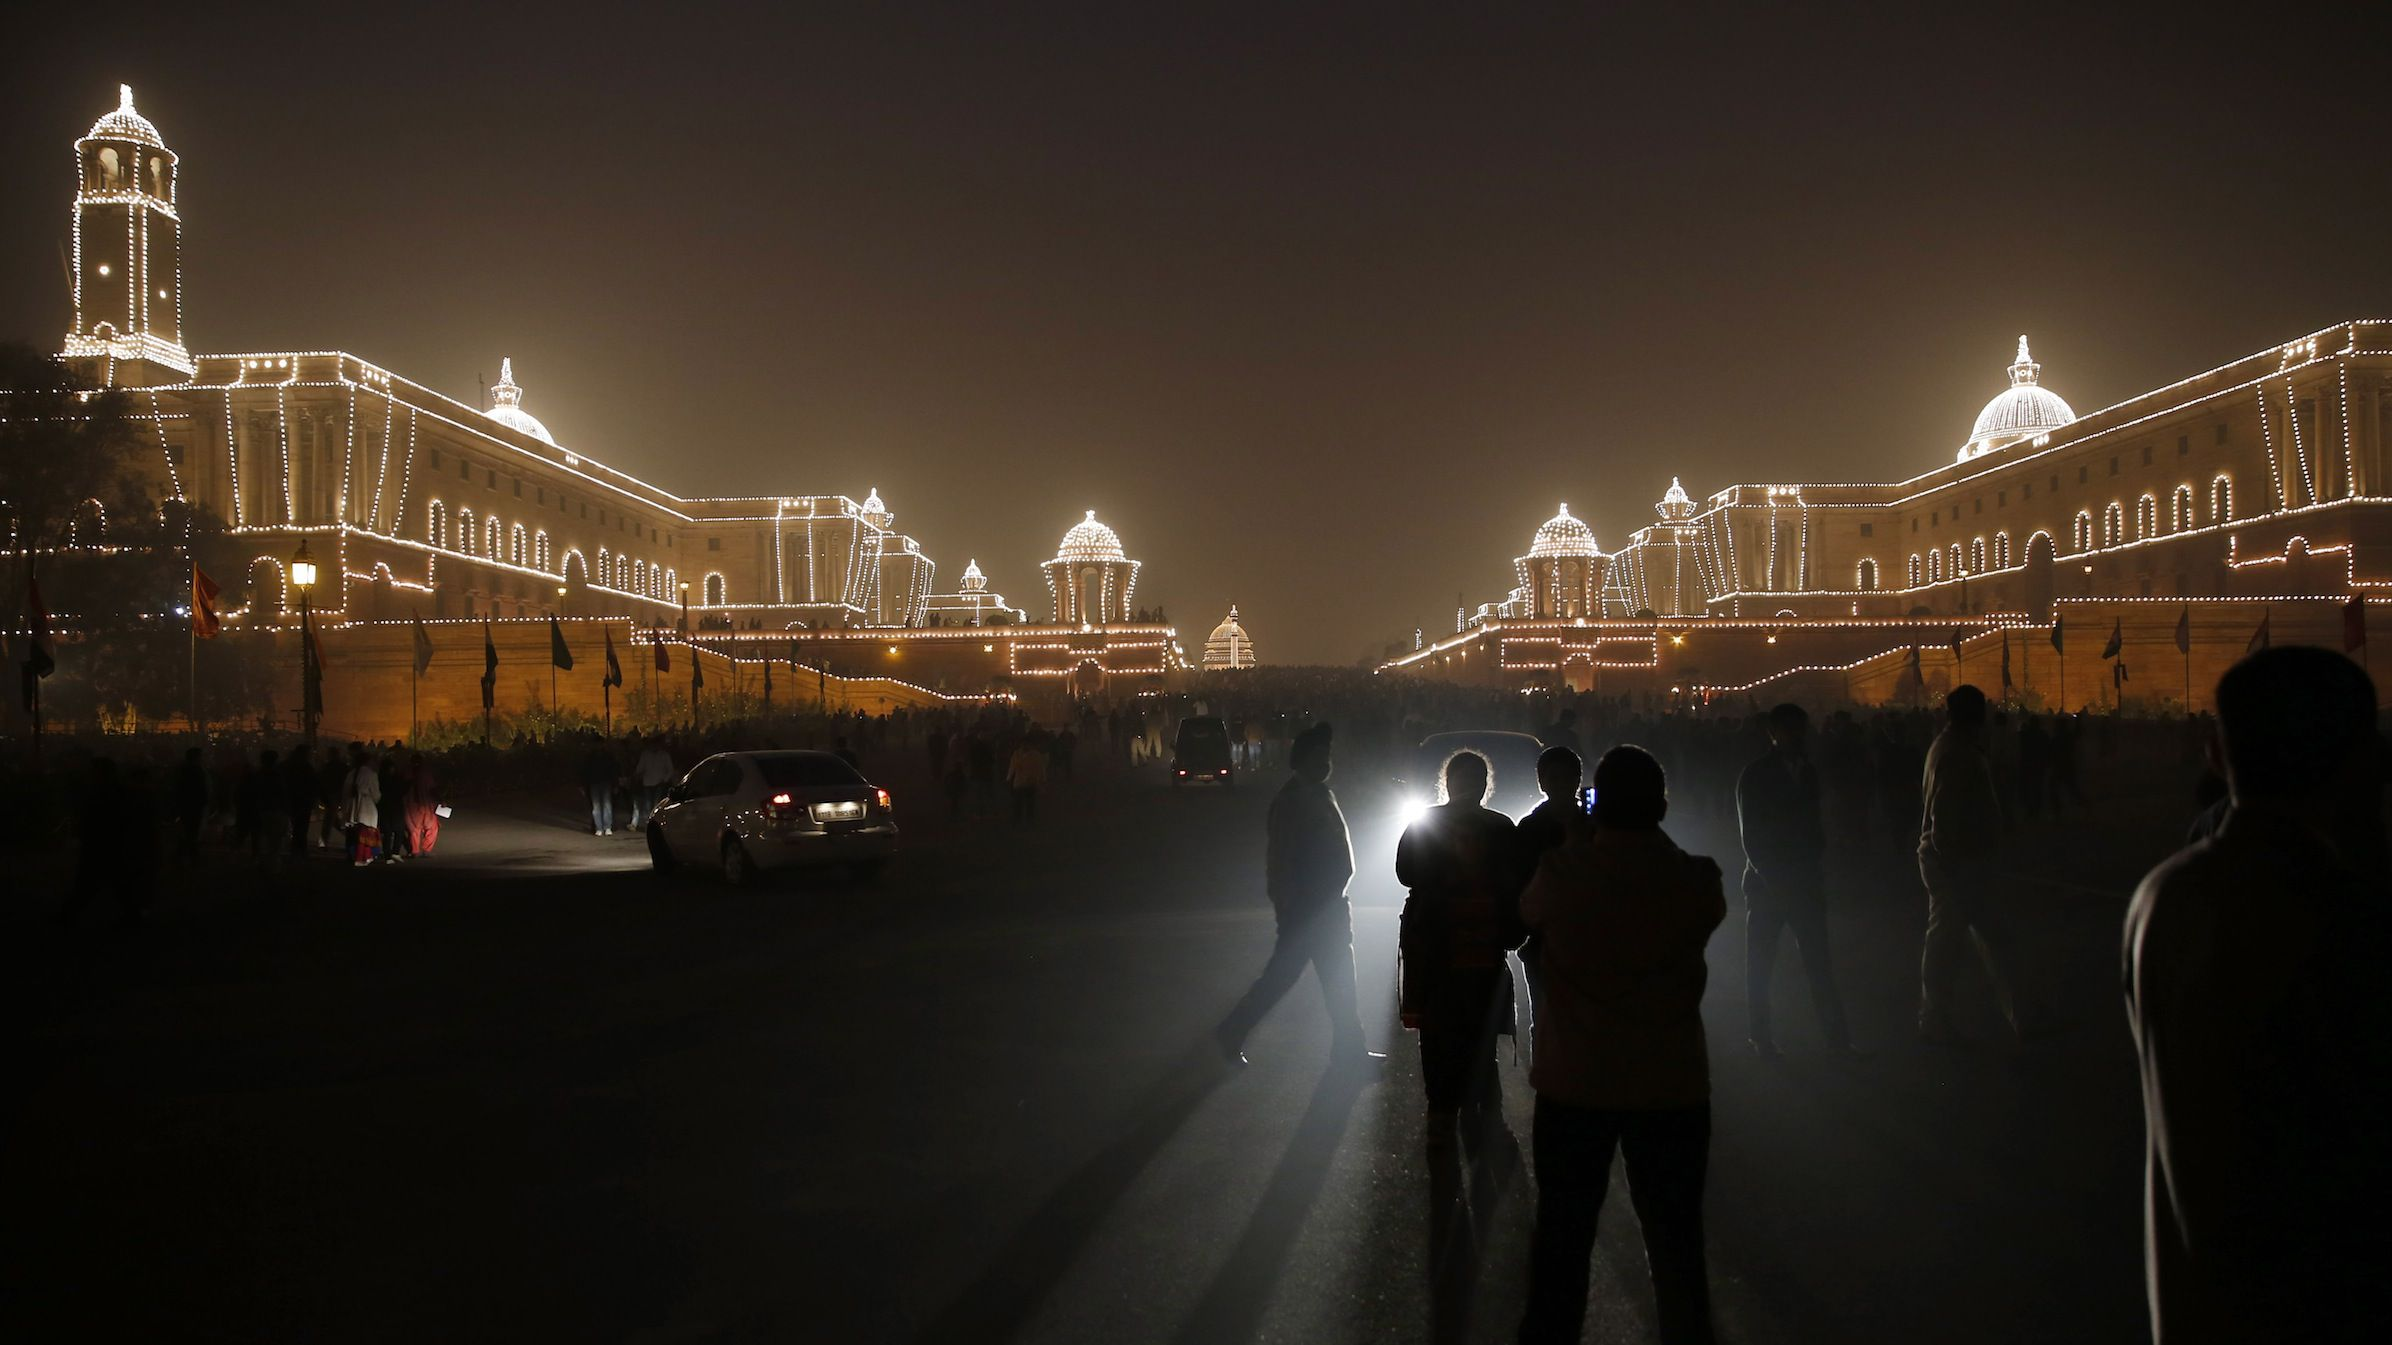 Indians take a tour of an illuminated Raisina Hill, which houses India's most important ministries and the presidential palace, after the Beating Retreat ceremony in New Delhi, India, Wednesday, Jan. 29, 2014. The ceremony marks the end of Republic Day celebrations. (AP Photo /Manish Swarup)